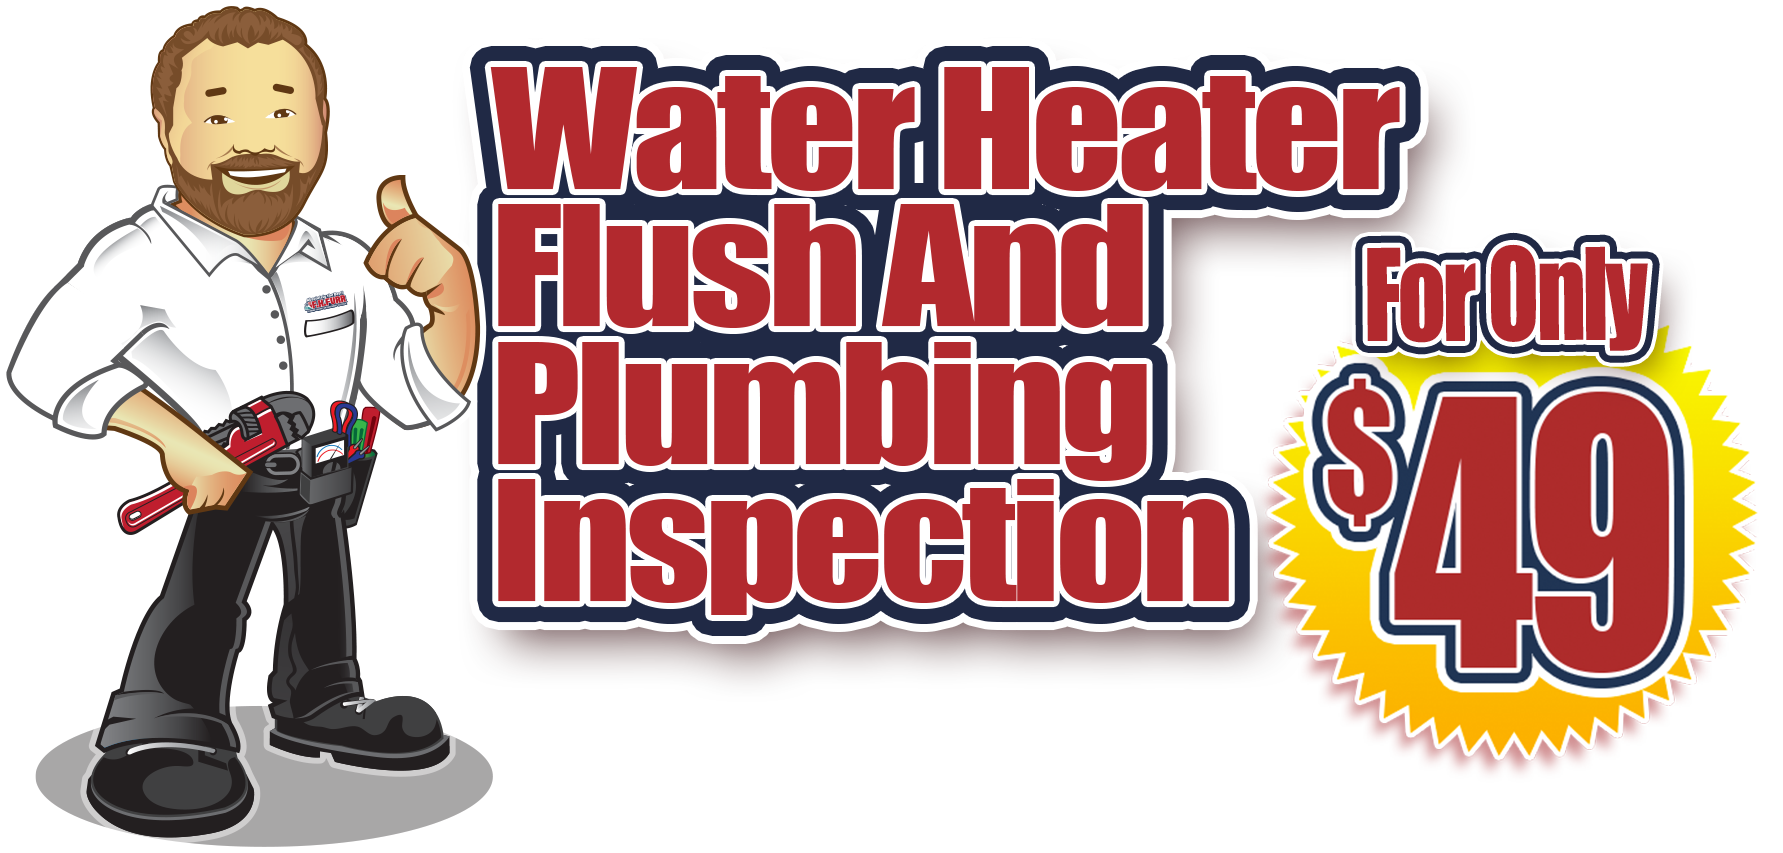 water-heater-flush-and-inspection-cartoon-furr.png